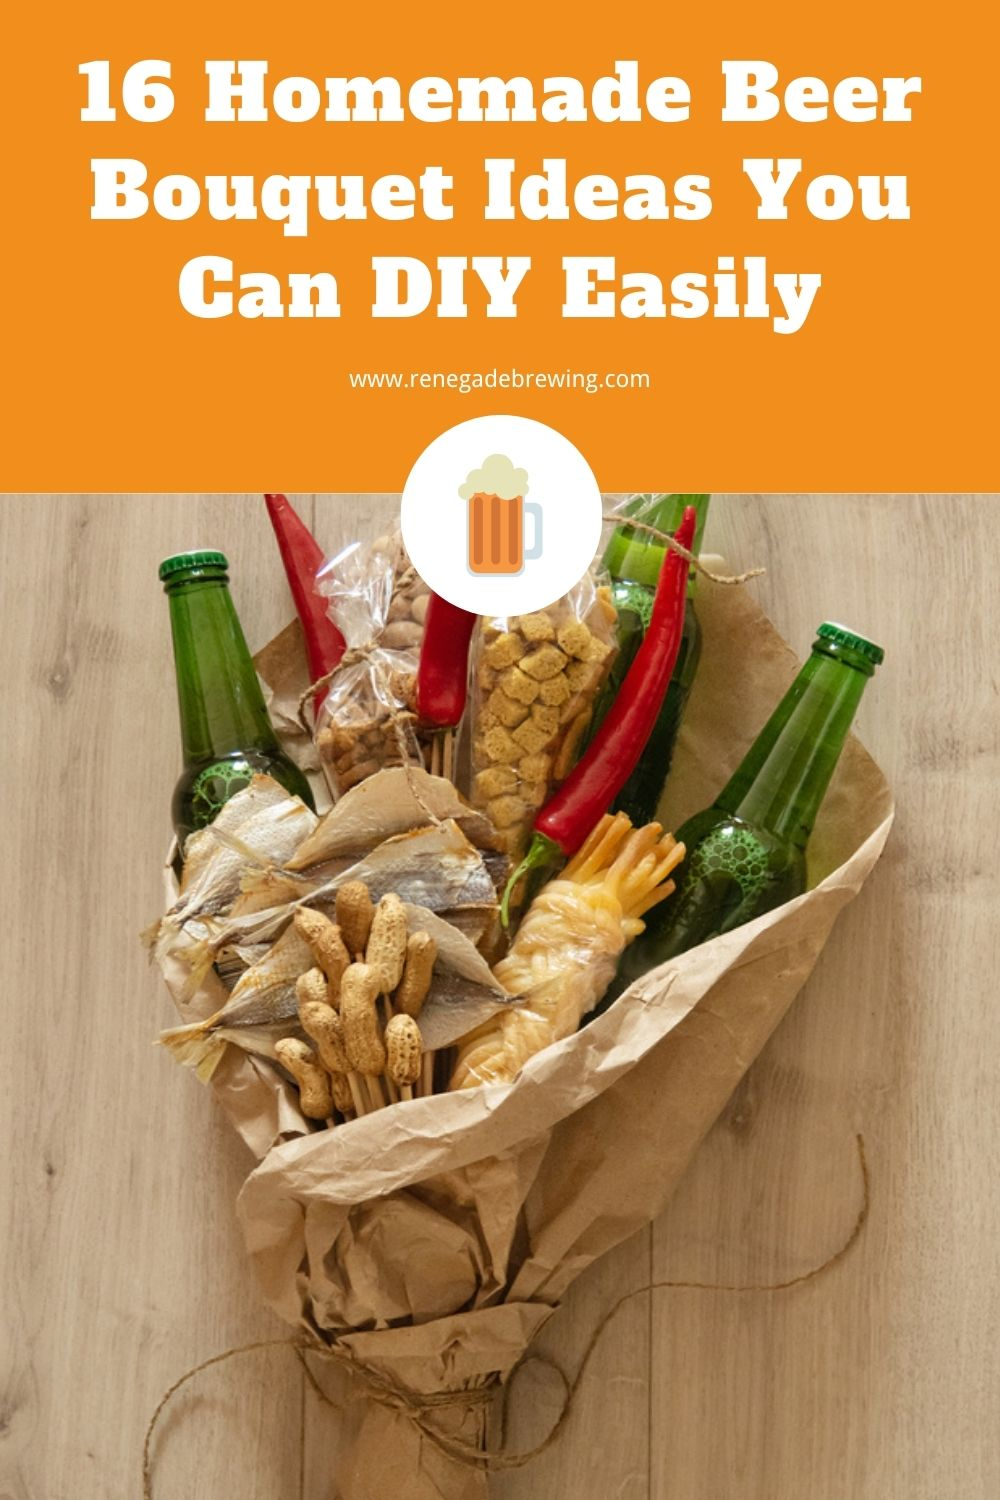 16 Homemade Beer Bouquet Ideas You Can DIY Easily 2